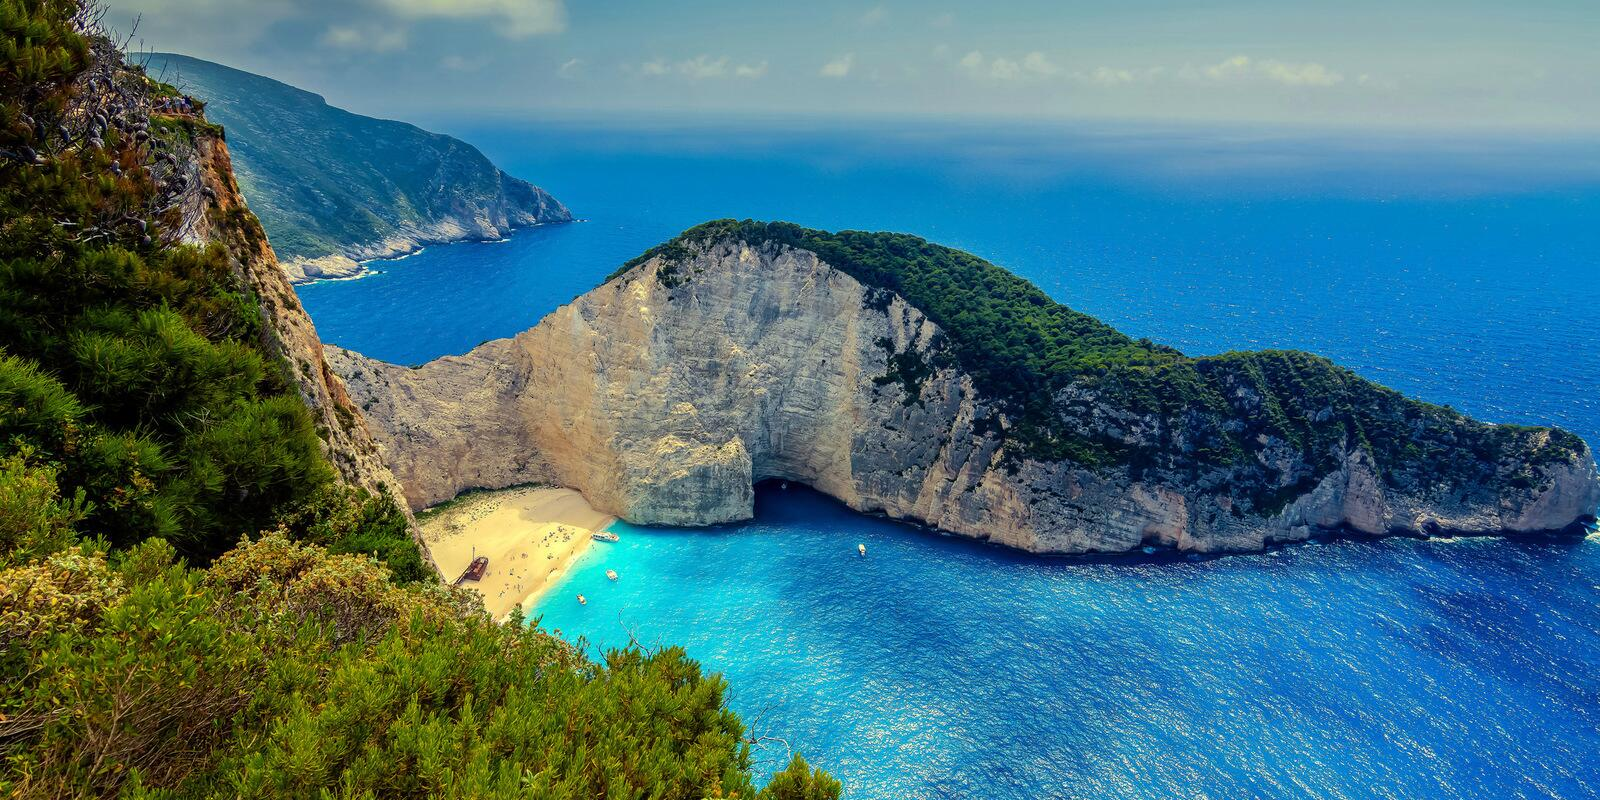 On the route of Ulysses sailing! Ithaca, Zakynthos, Kefalonia in a splendid Oceanis 46.1 of 2020 !!